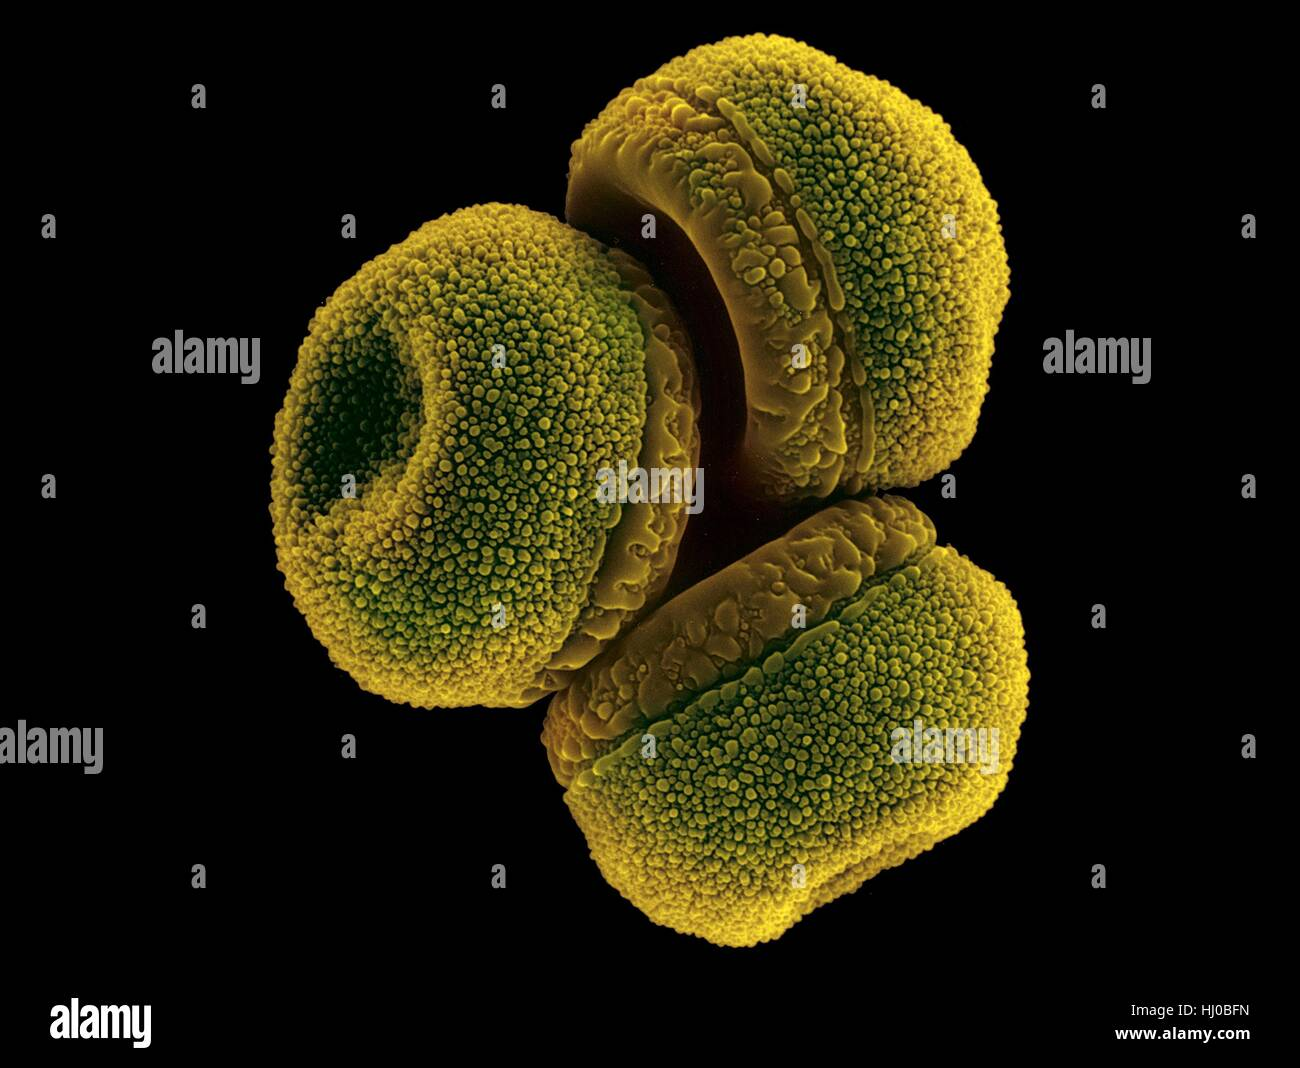 Waterlily pollen (Nymphaea mexicana),coloured scanning electron micrograph (SEM).Nymphaea mexicana is species of Stock Photo